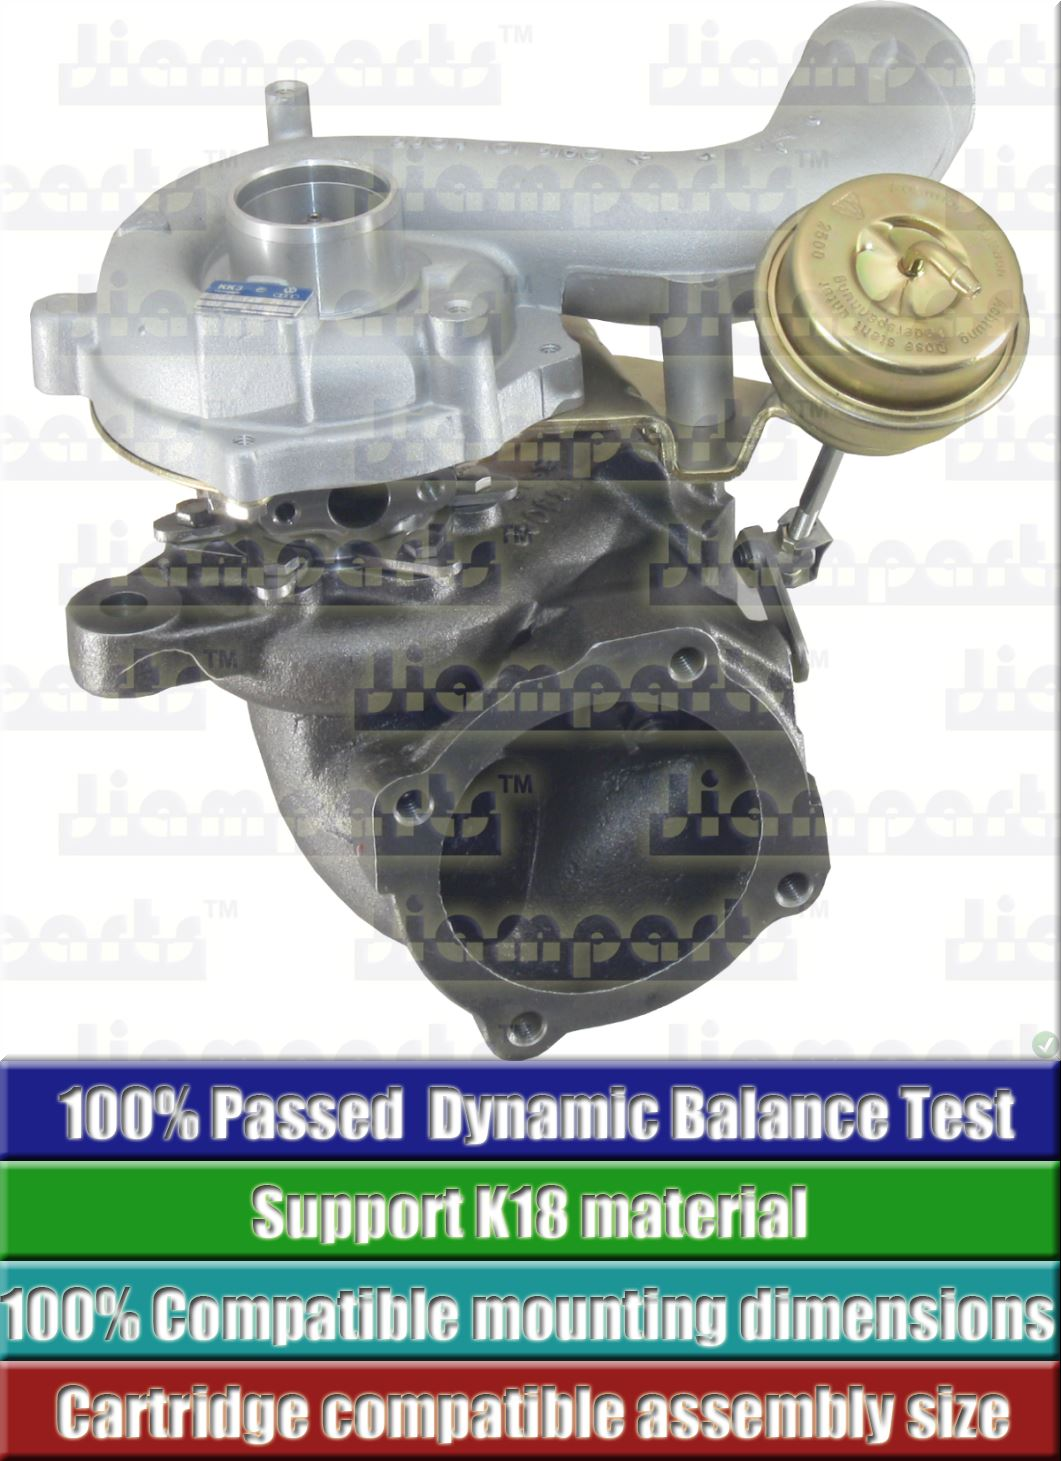 Description image:Turbocharger K03-2075EXD 5 88 5303-988-0053